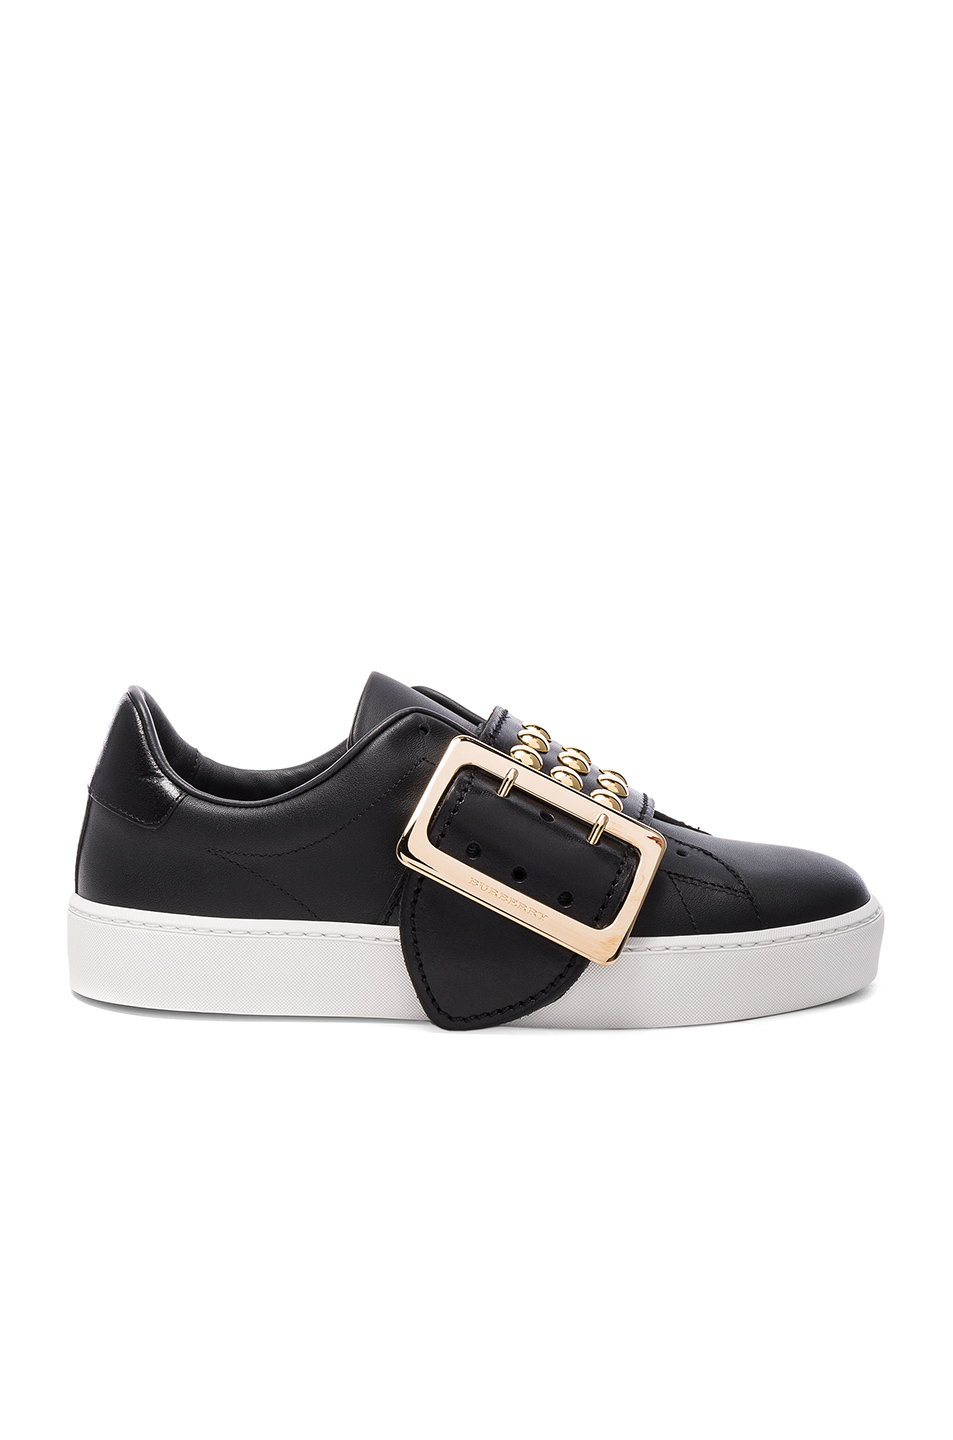 Burberry Studded Leather Westford Sneakers in Black